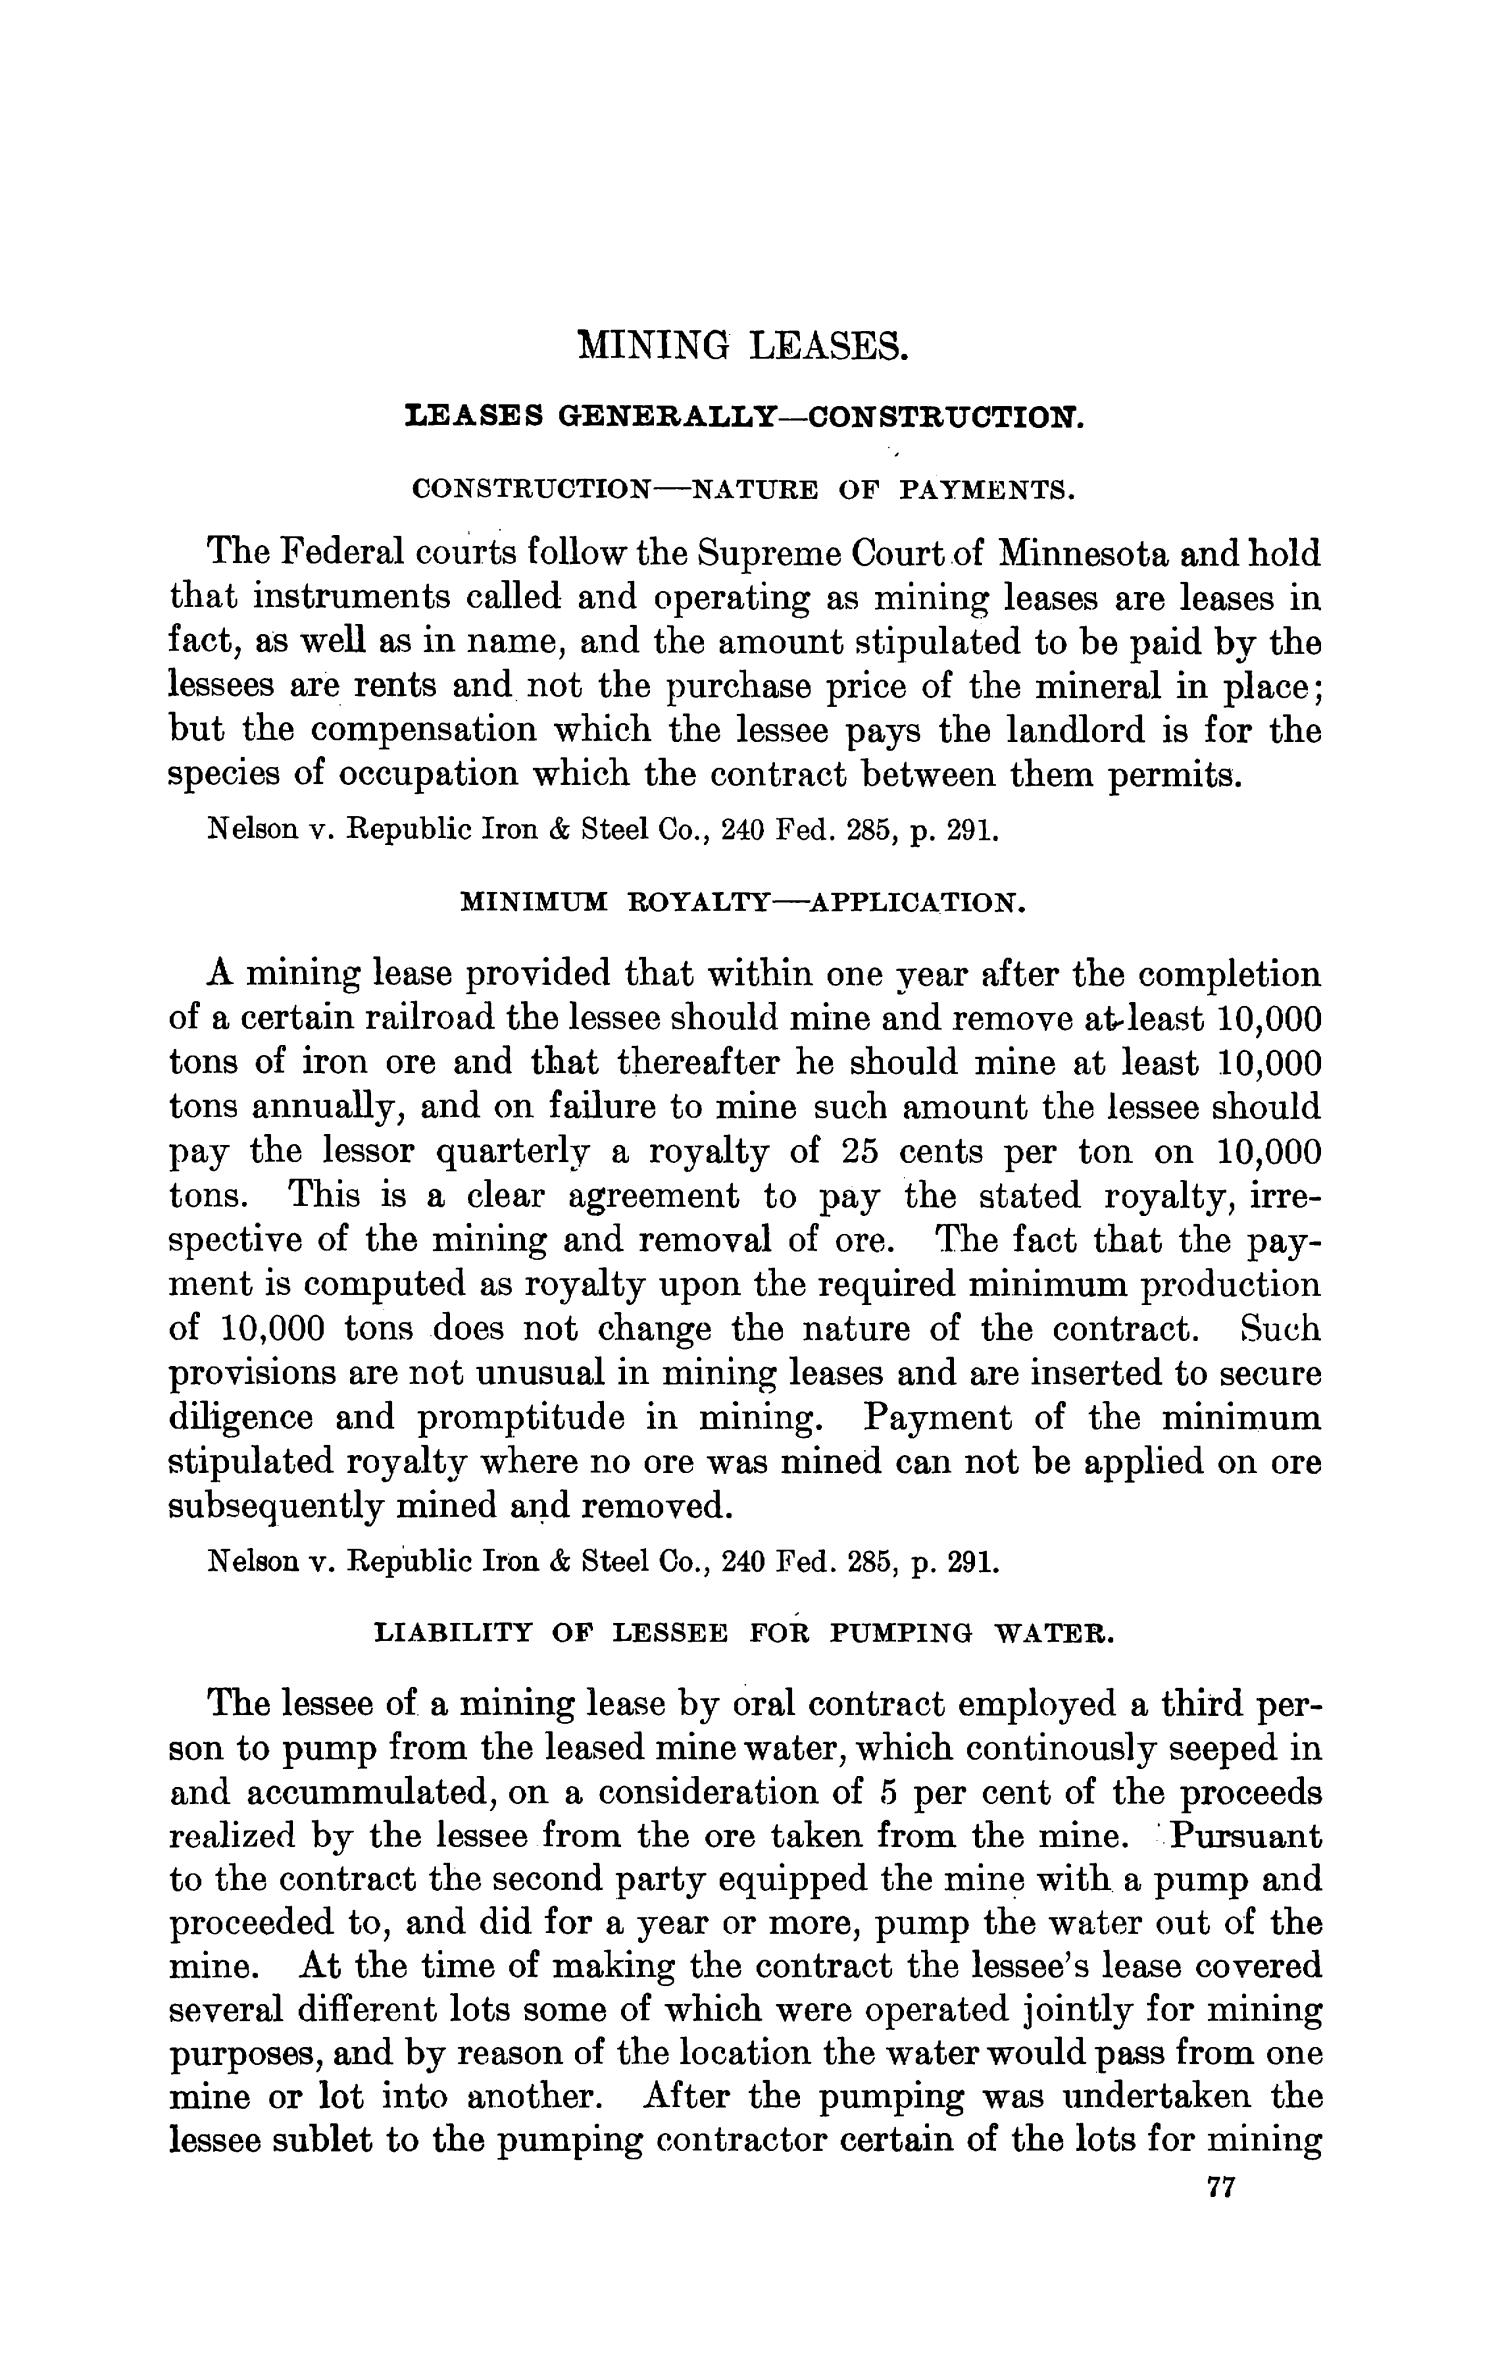 Abstracts of Current Decisions on Mines and Mining: May to August, 1917                                                                                                      77